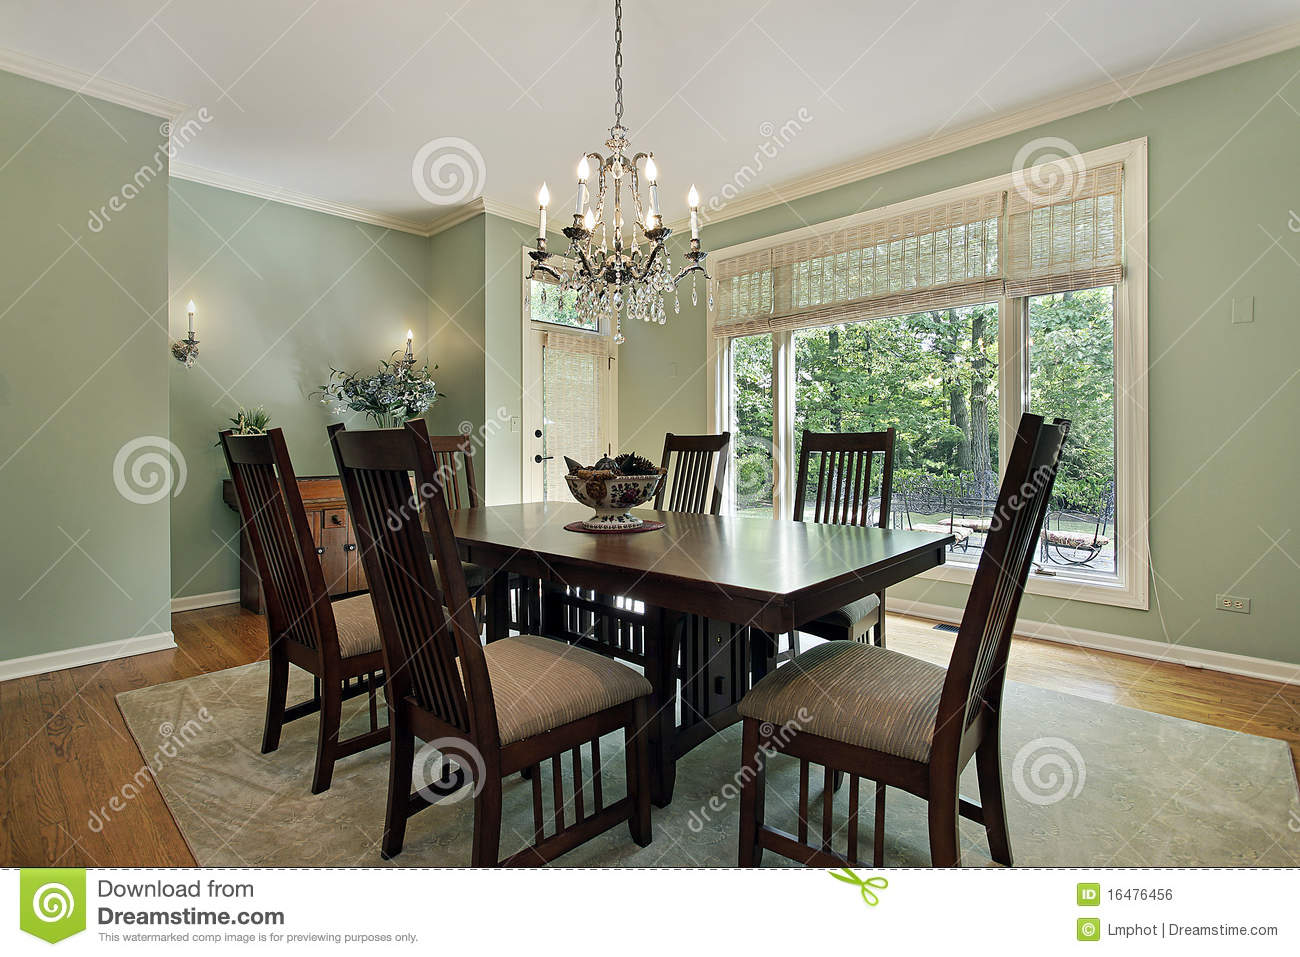 Dining Room With Green Walls Royalty Free Stock Image